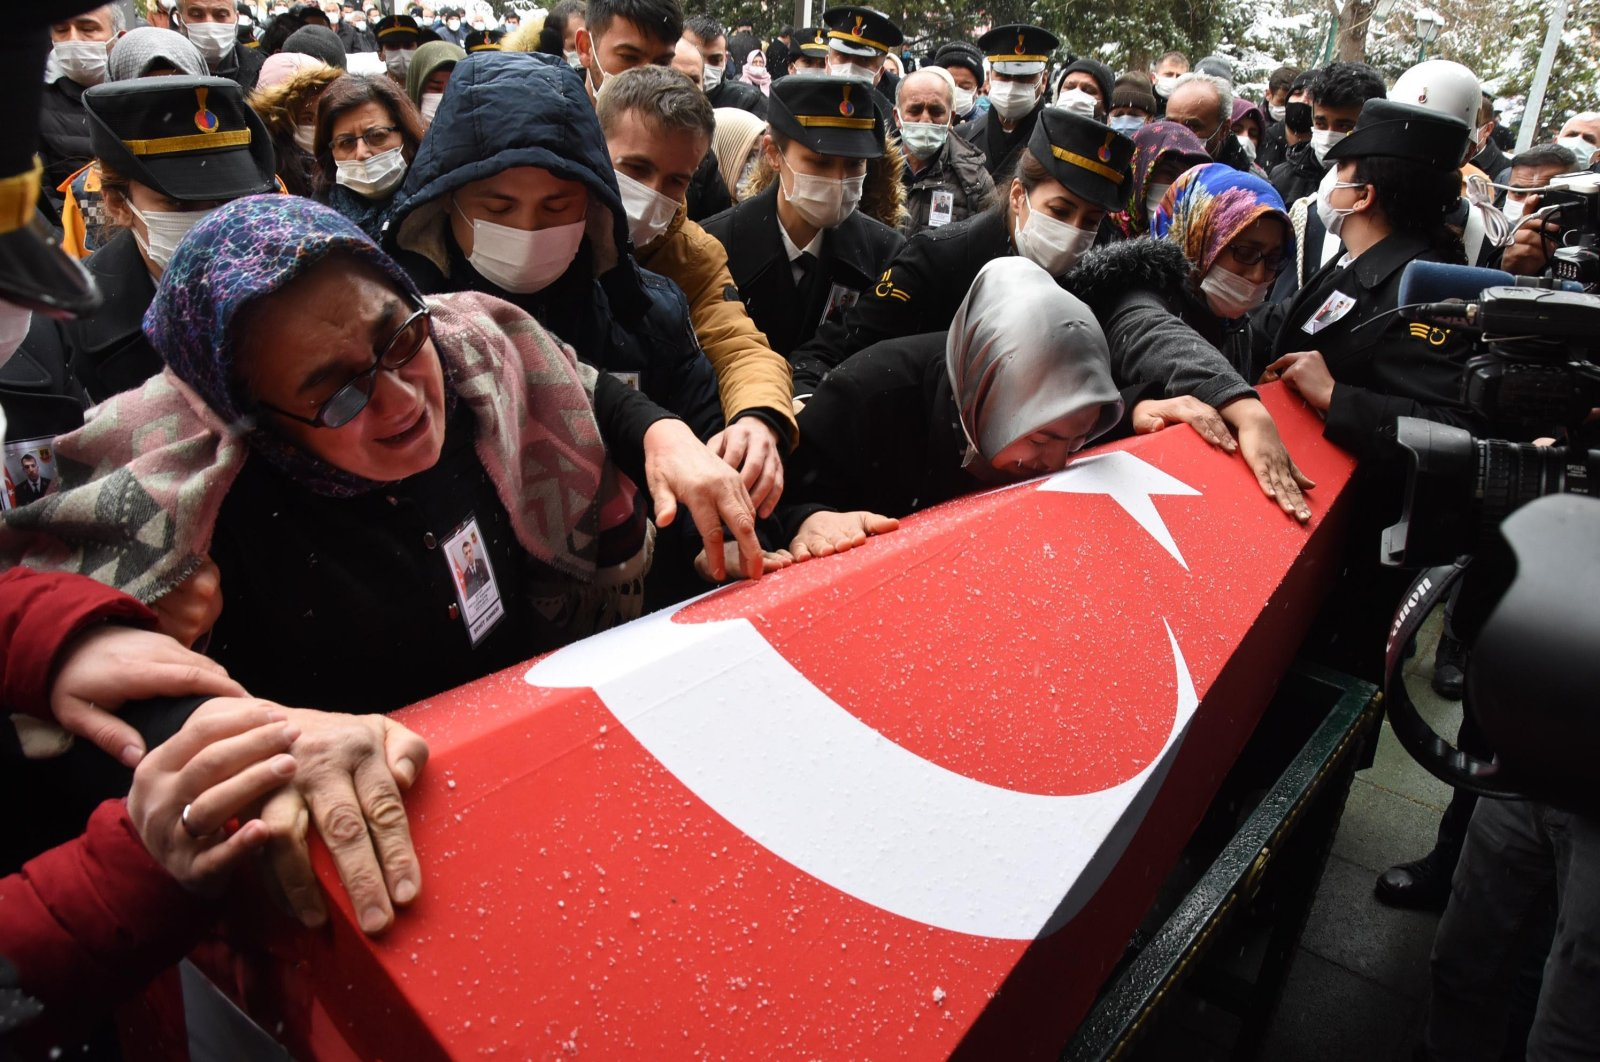 People mourn during the funeral of the Gerndermarie Specialized Sergeant Mevlüt Kahveci who the PKK terrorists killed in northern Iraq's Gara, Feb.18, 2021. (DHA)